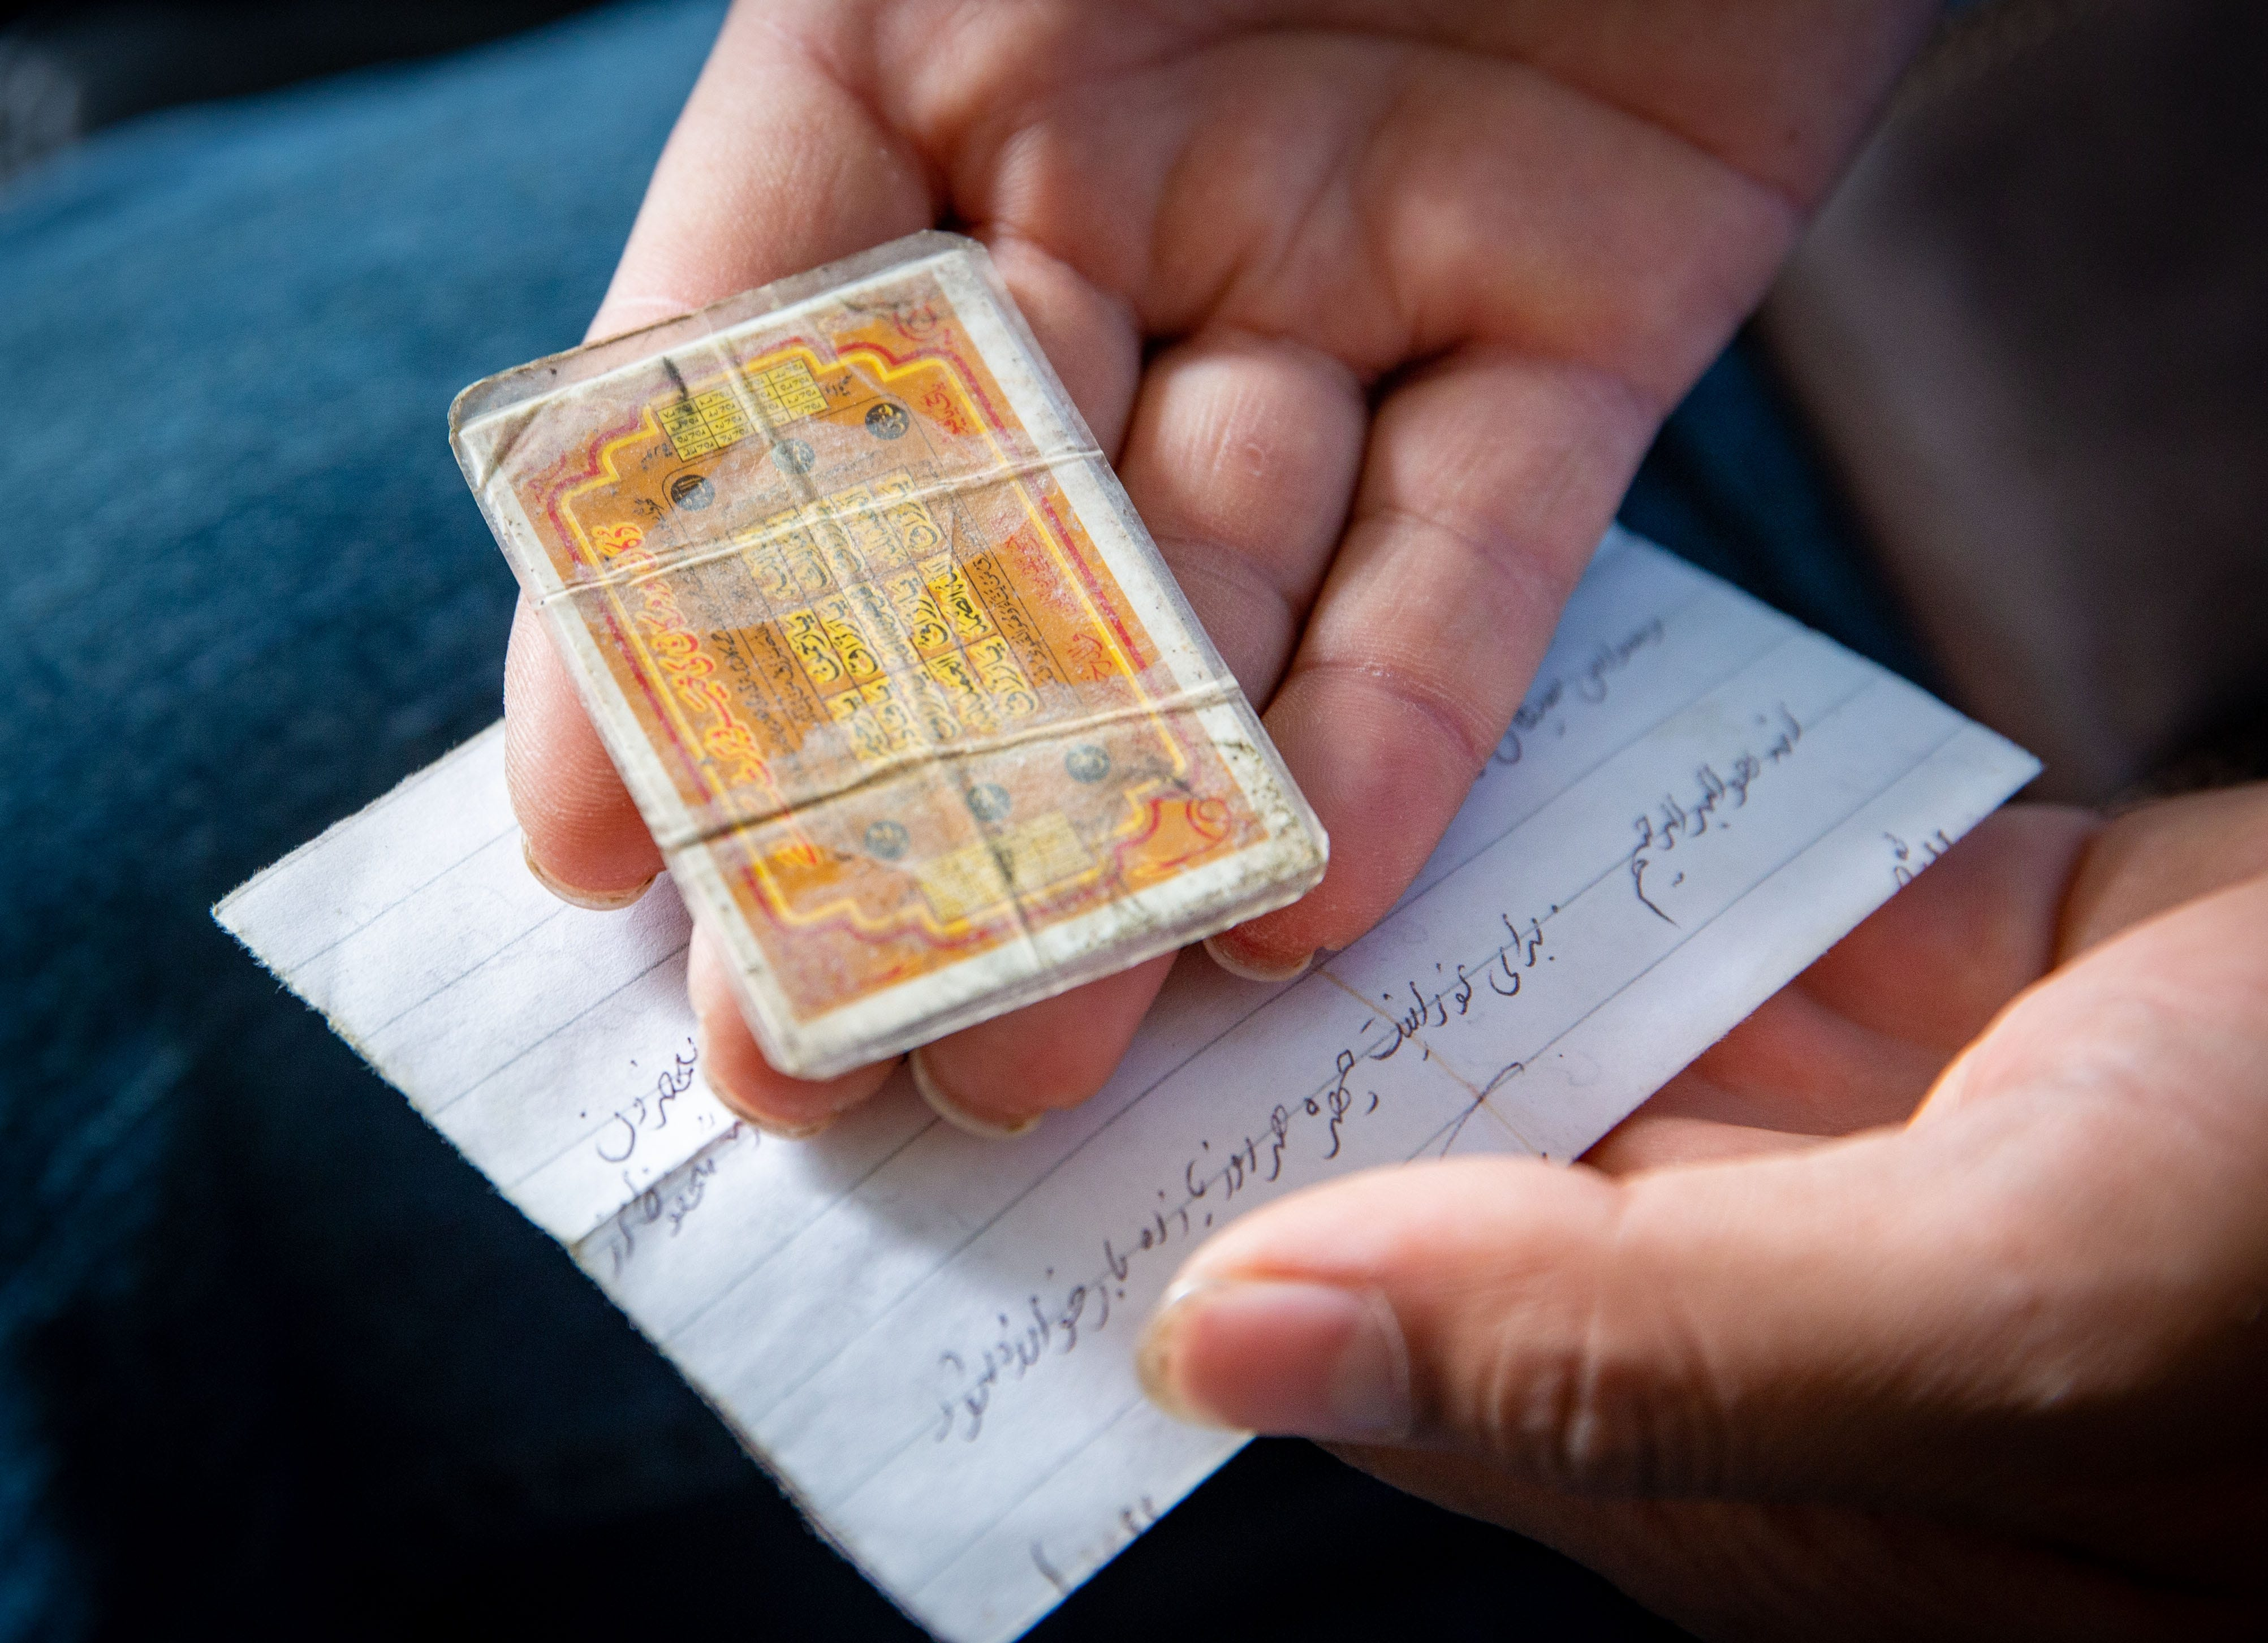 Zalmay Niazy holds a prayer card his father gave him while he was working as a translator for U.S. troops.